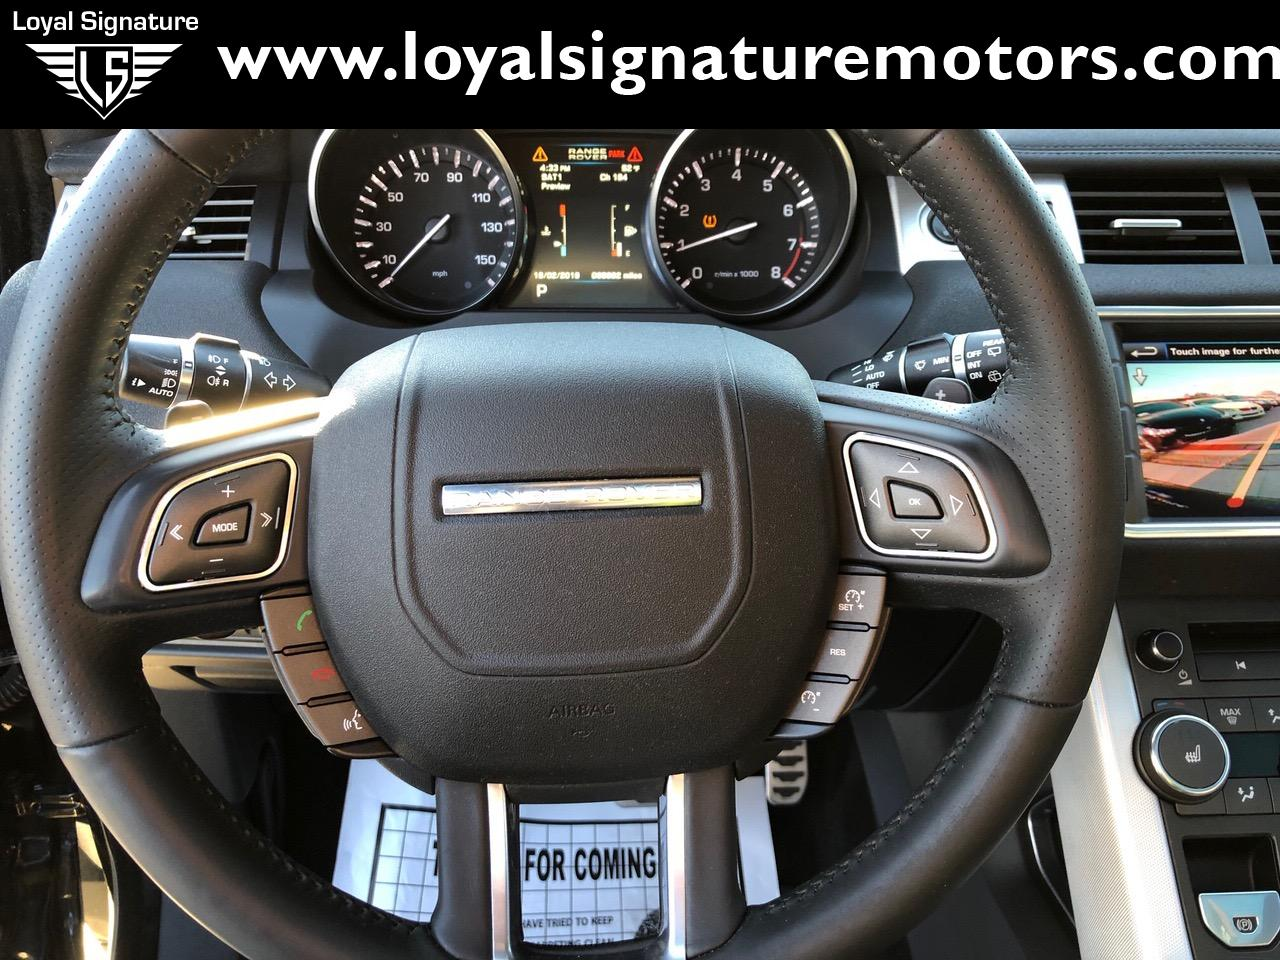 Used-2012-Land-Rover-Range-Rover-Evoque-Coupe-Dynamic